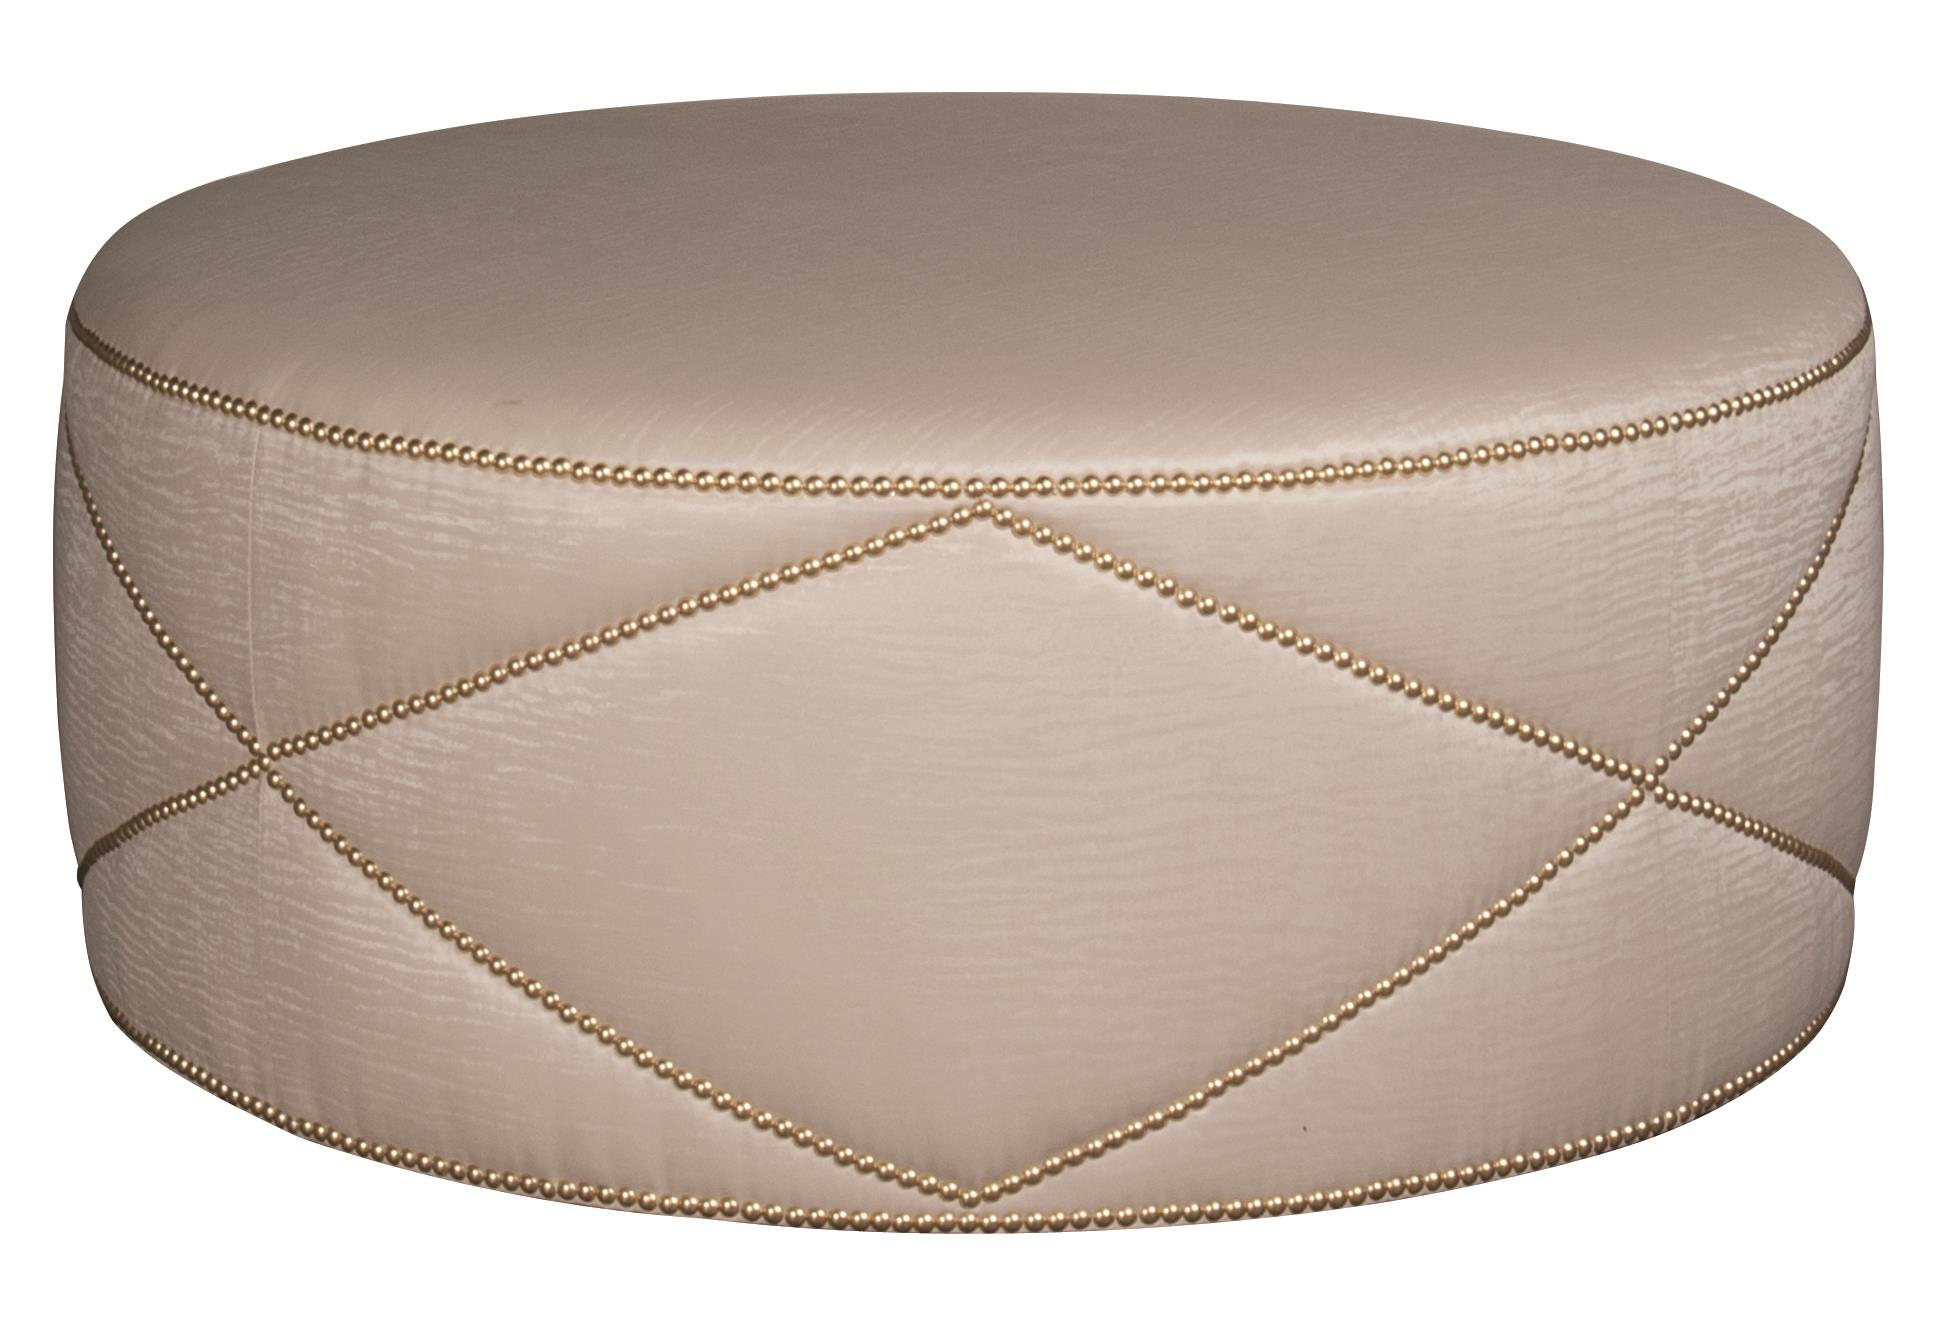 Bernhardt Highland Place Highland Place Round Cocktail Ottoman - Item Number: 116113589